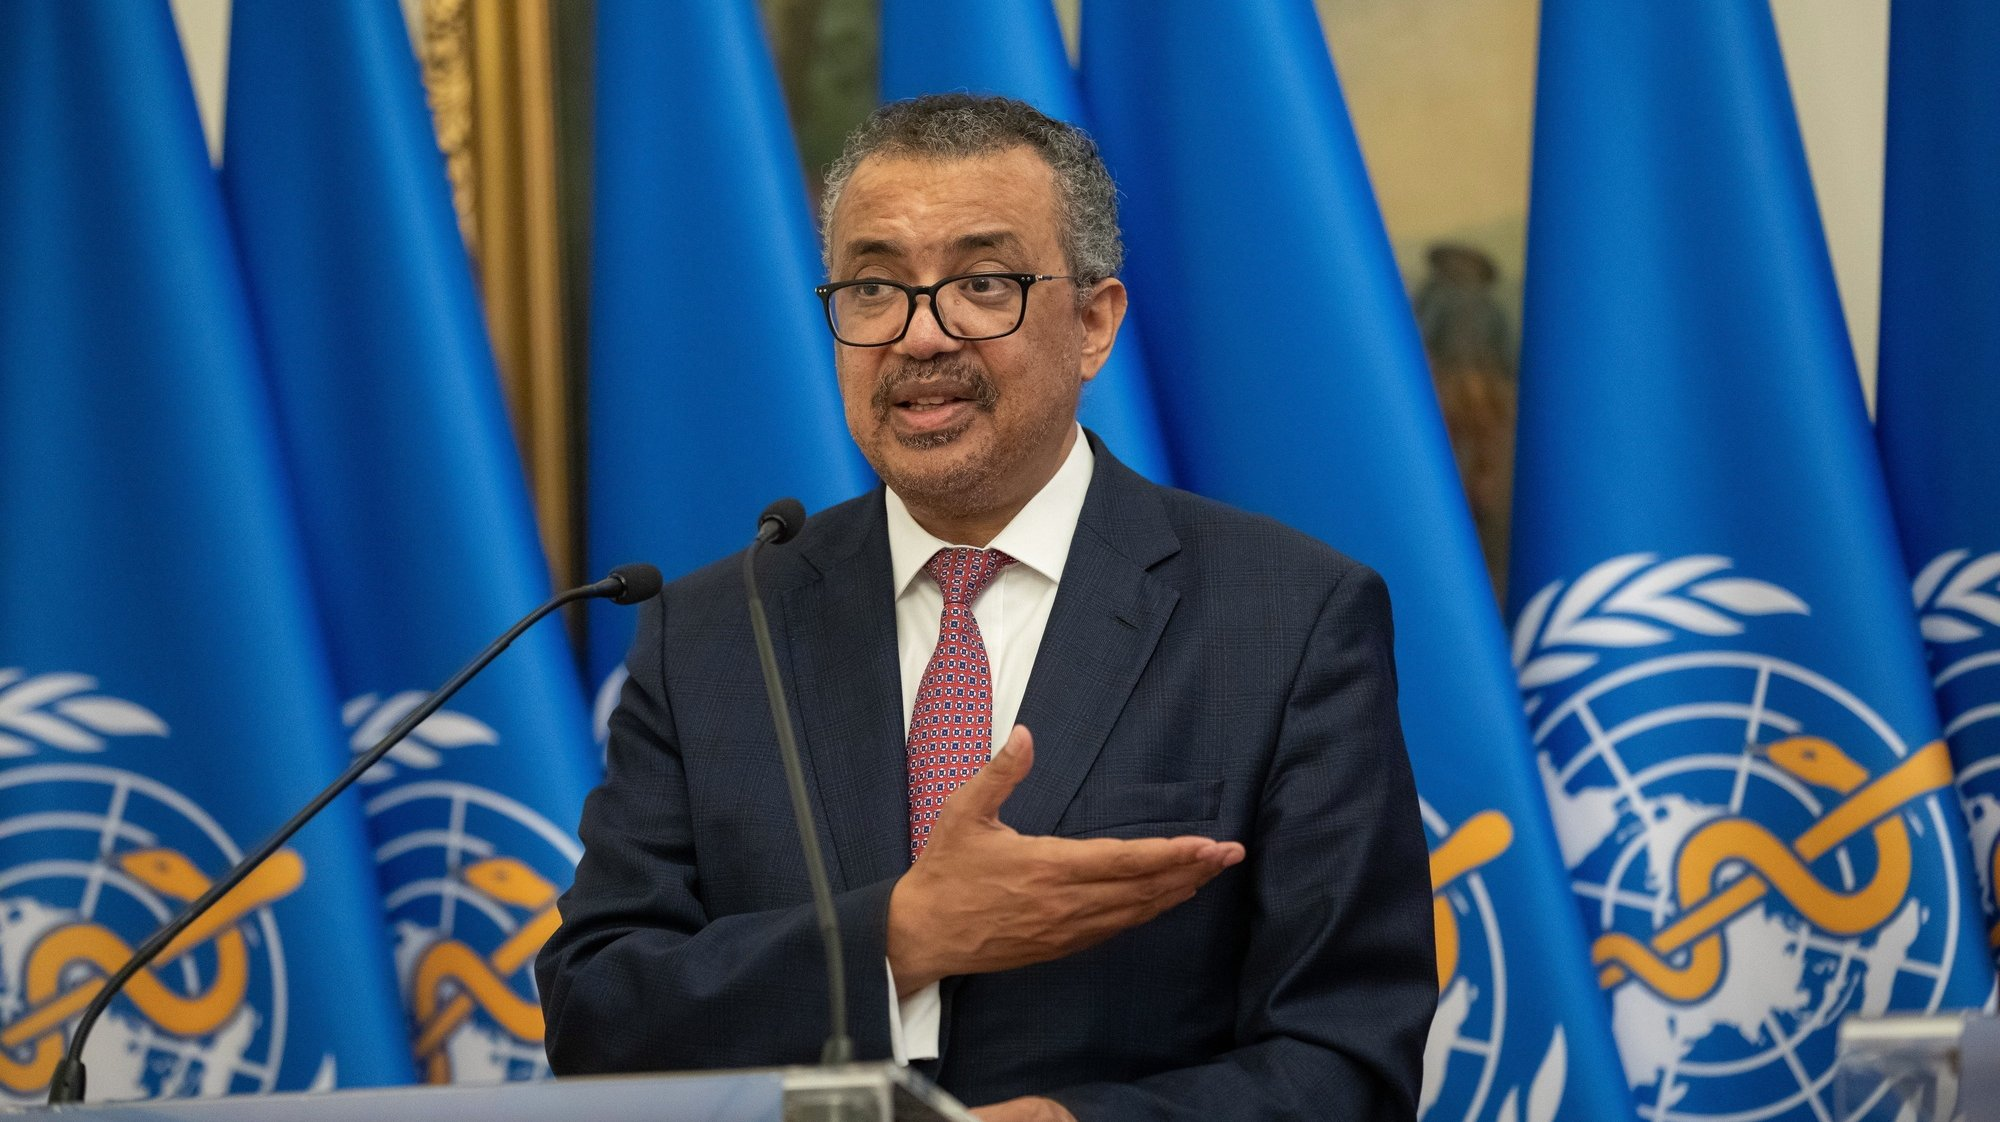 epa09425975 Director-General of the World Health Organization Tedros Adhanom Ghebreyesus (L) speaks during a joint press conference with Hungarian Minister of Foreign Affairs and Trade Peter Szijjarto after their talks in the ministry in Budapest, Hungary, 23 August 2021.  EPA/Balazs Mohai HUNGARY OUT